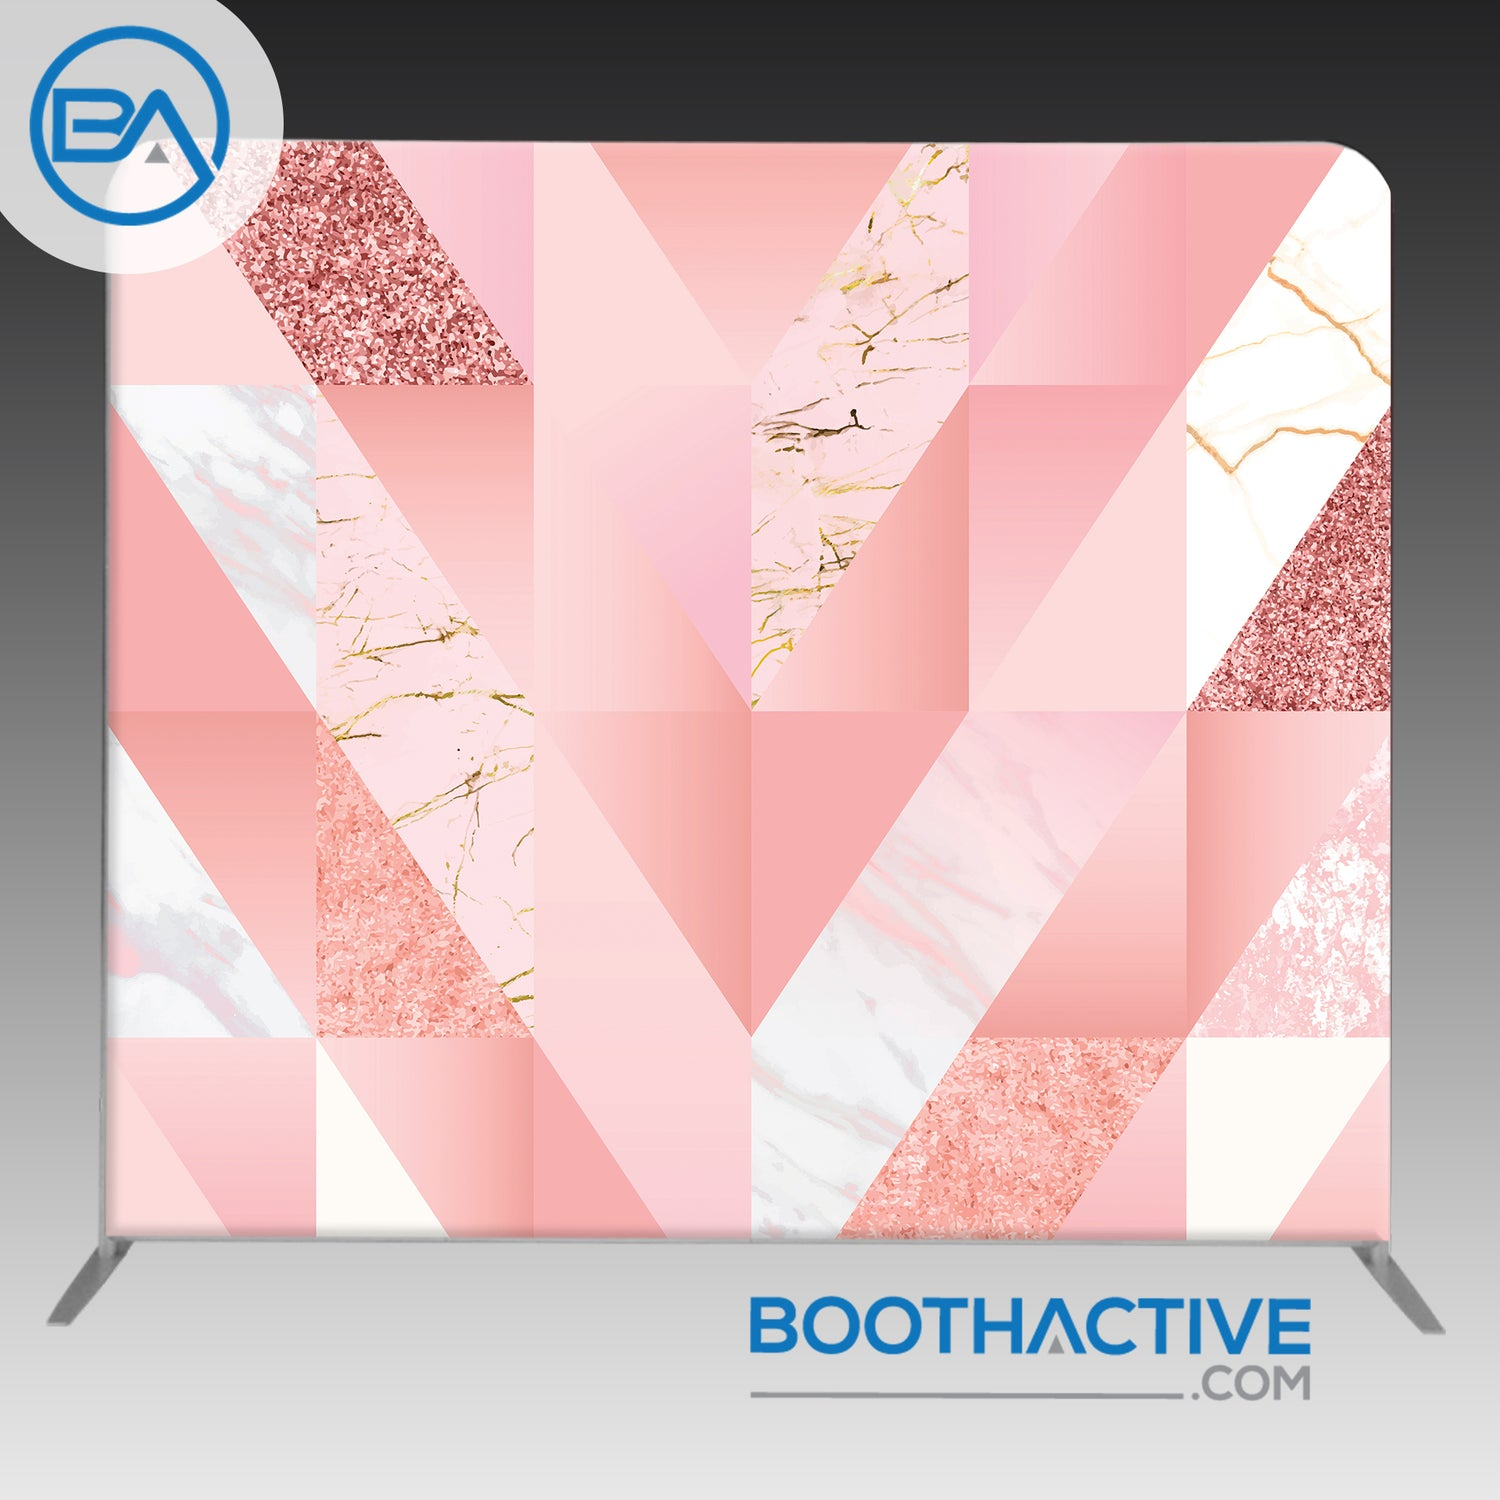 8' x 8' Backdrop - Pink Mix